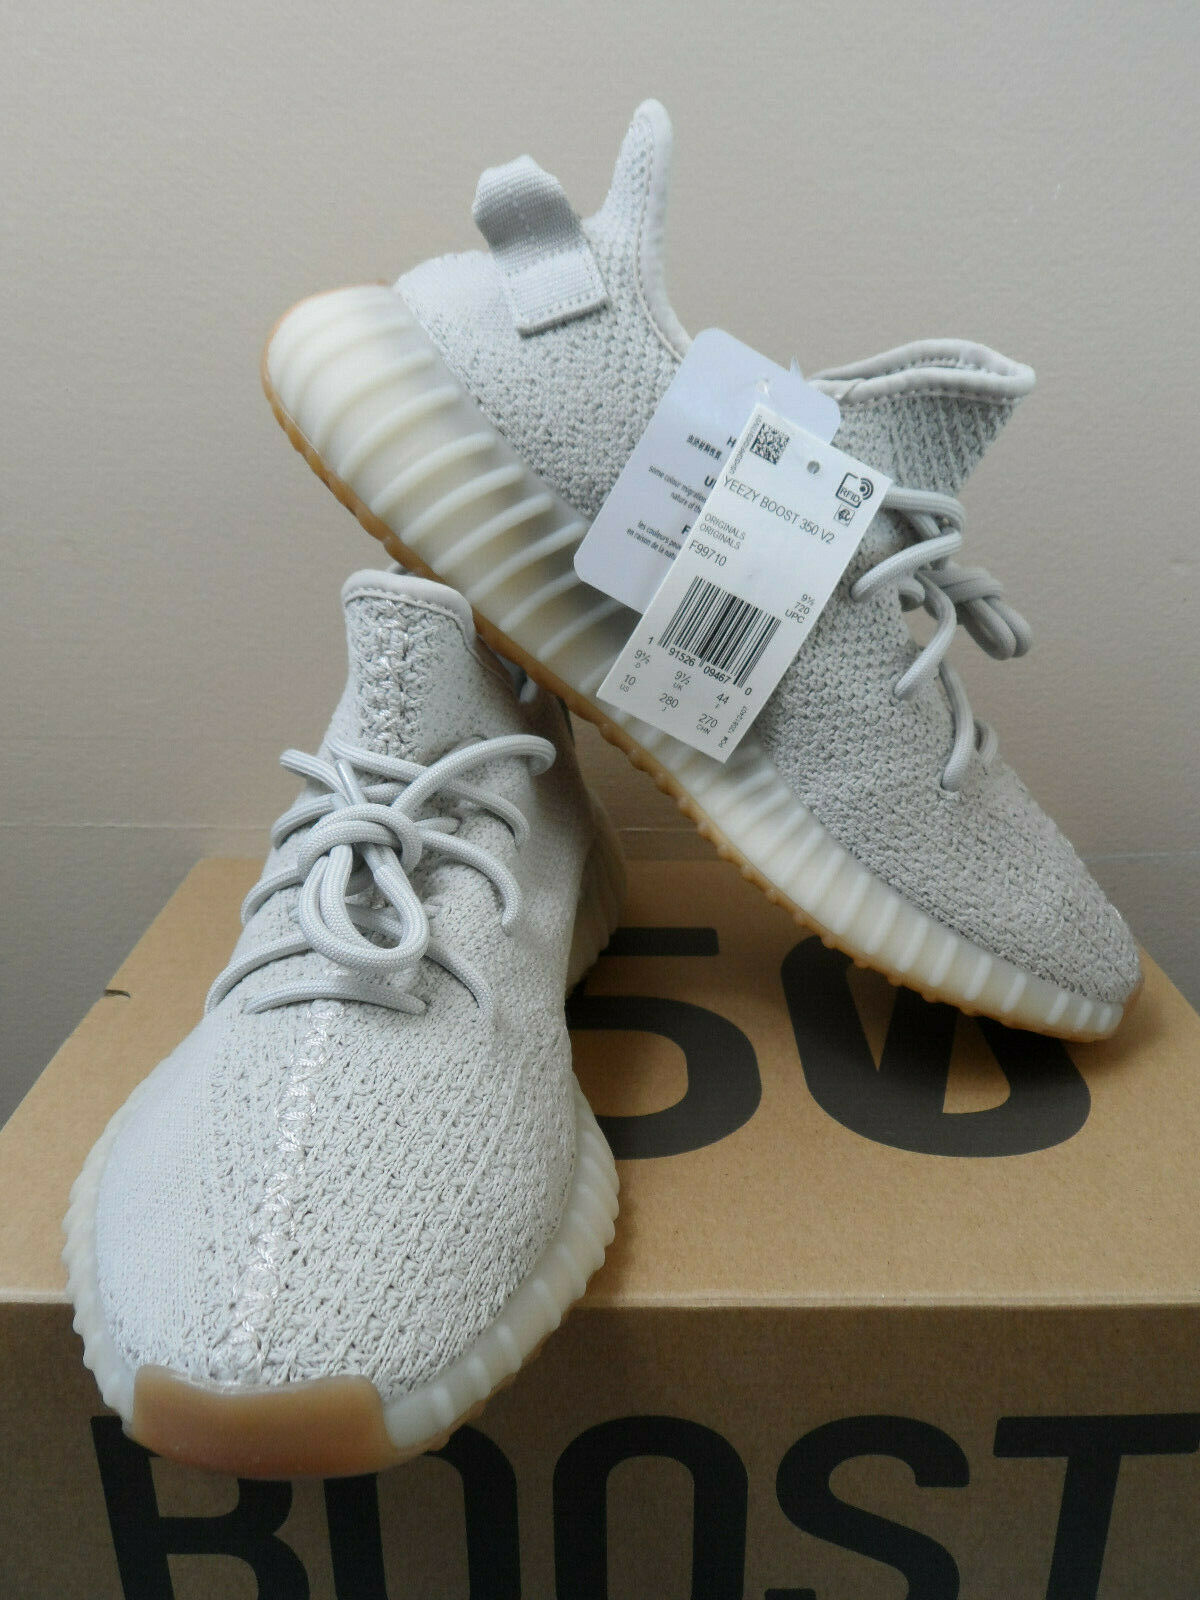 Adidas Yeezy Boost 350 V2  Sesame  F99710 - New - 100% Authentic - Size 10